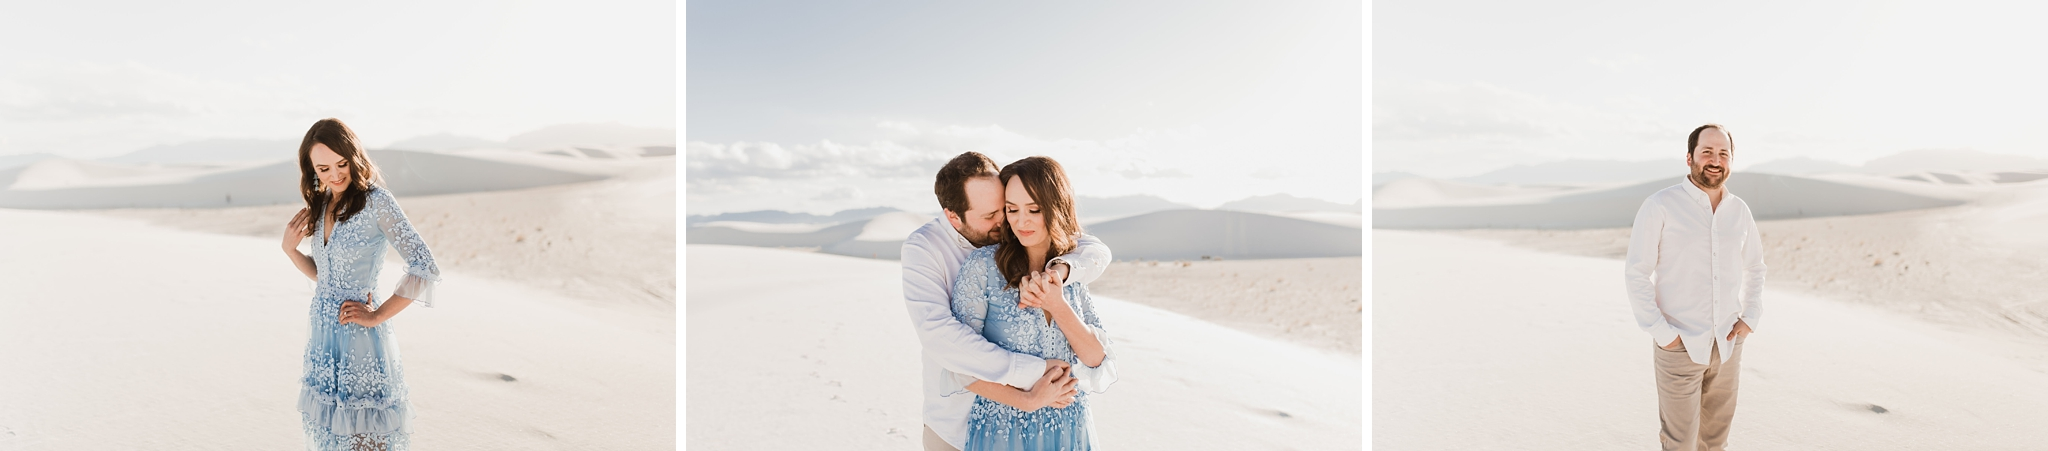 Alicia+lucia+photography+-+albuquerque+wedding+photographer+-+santa+fe+wedding+photography+-+new+mexico+wedding+photographer+-+new+mexico+wedding+-+new+mexico+engagement+-+white+sands+engagement+-+white+sands+national+monument_0005.jpg